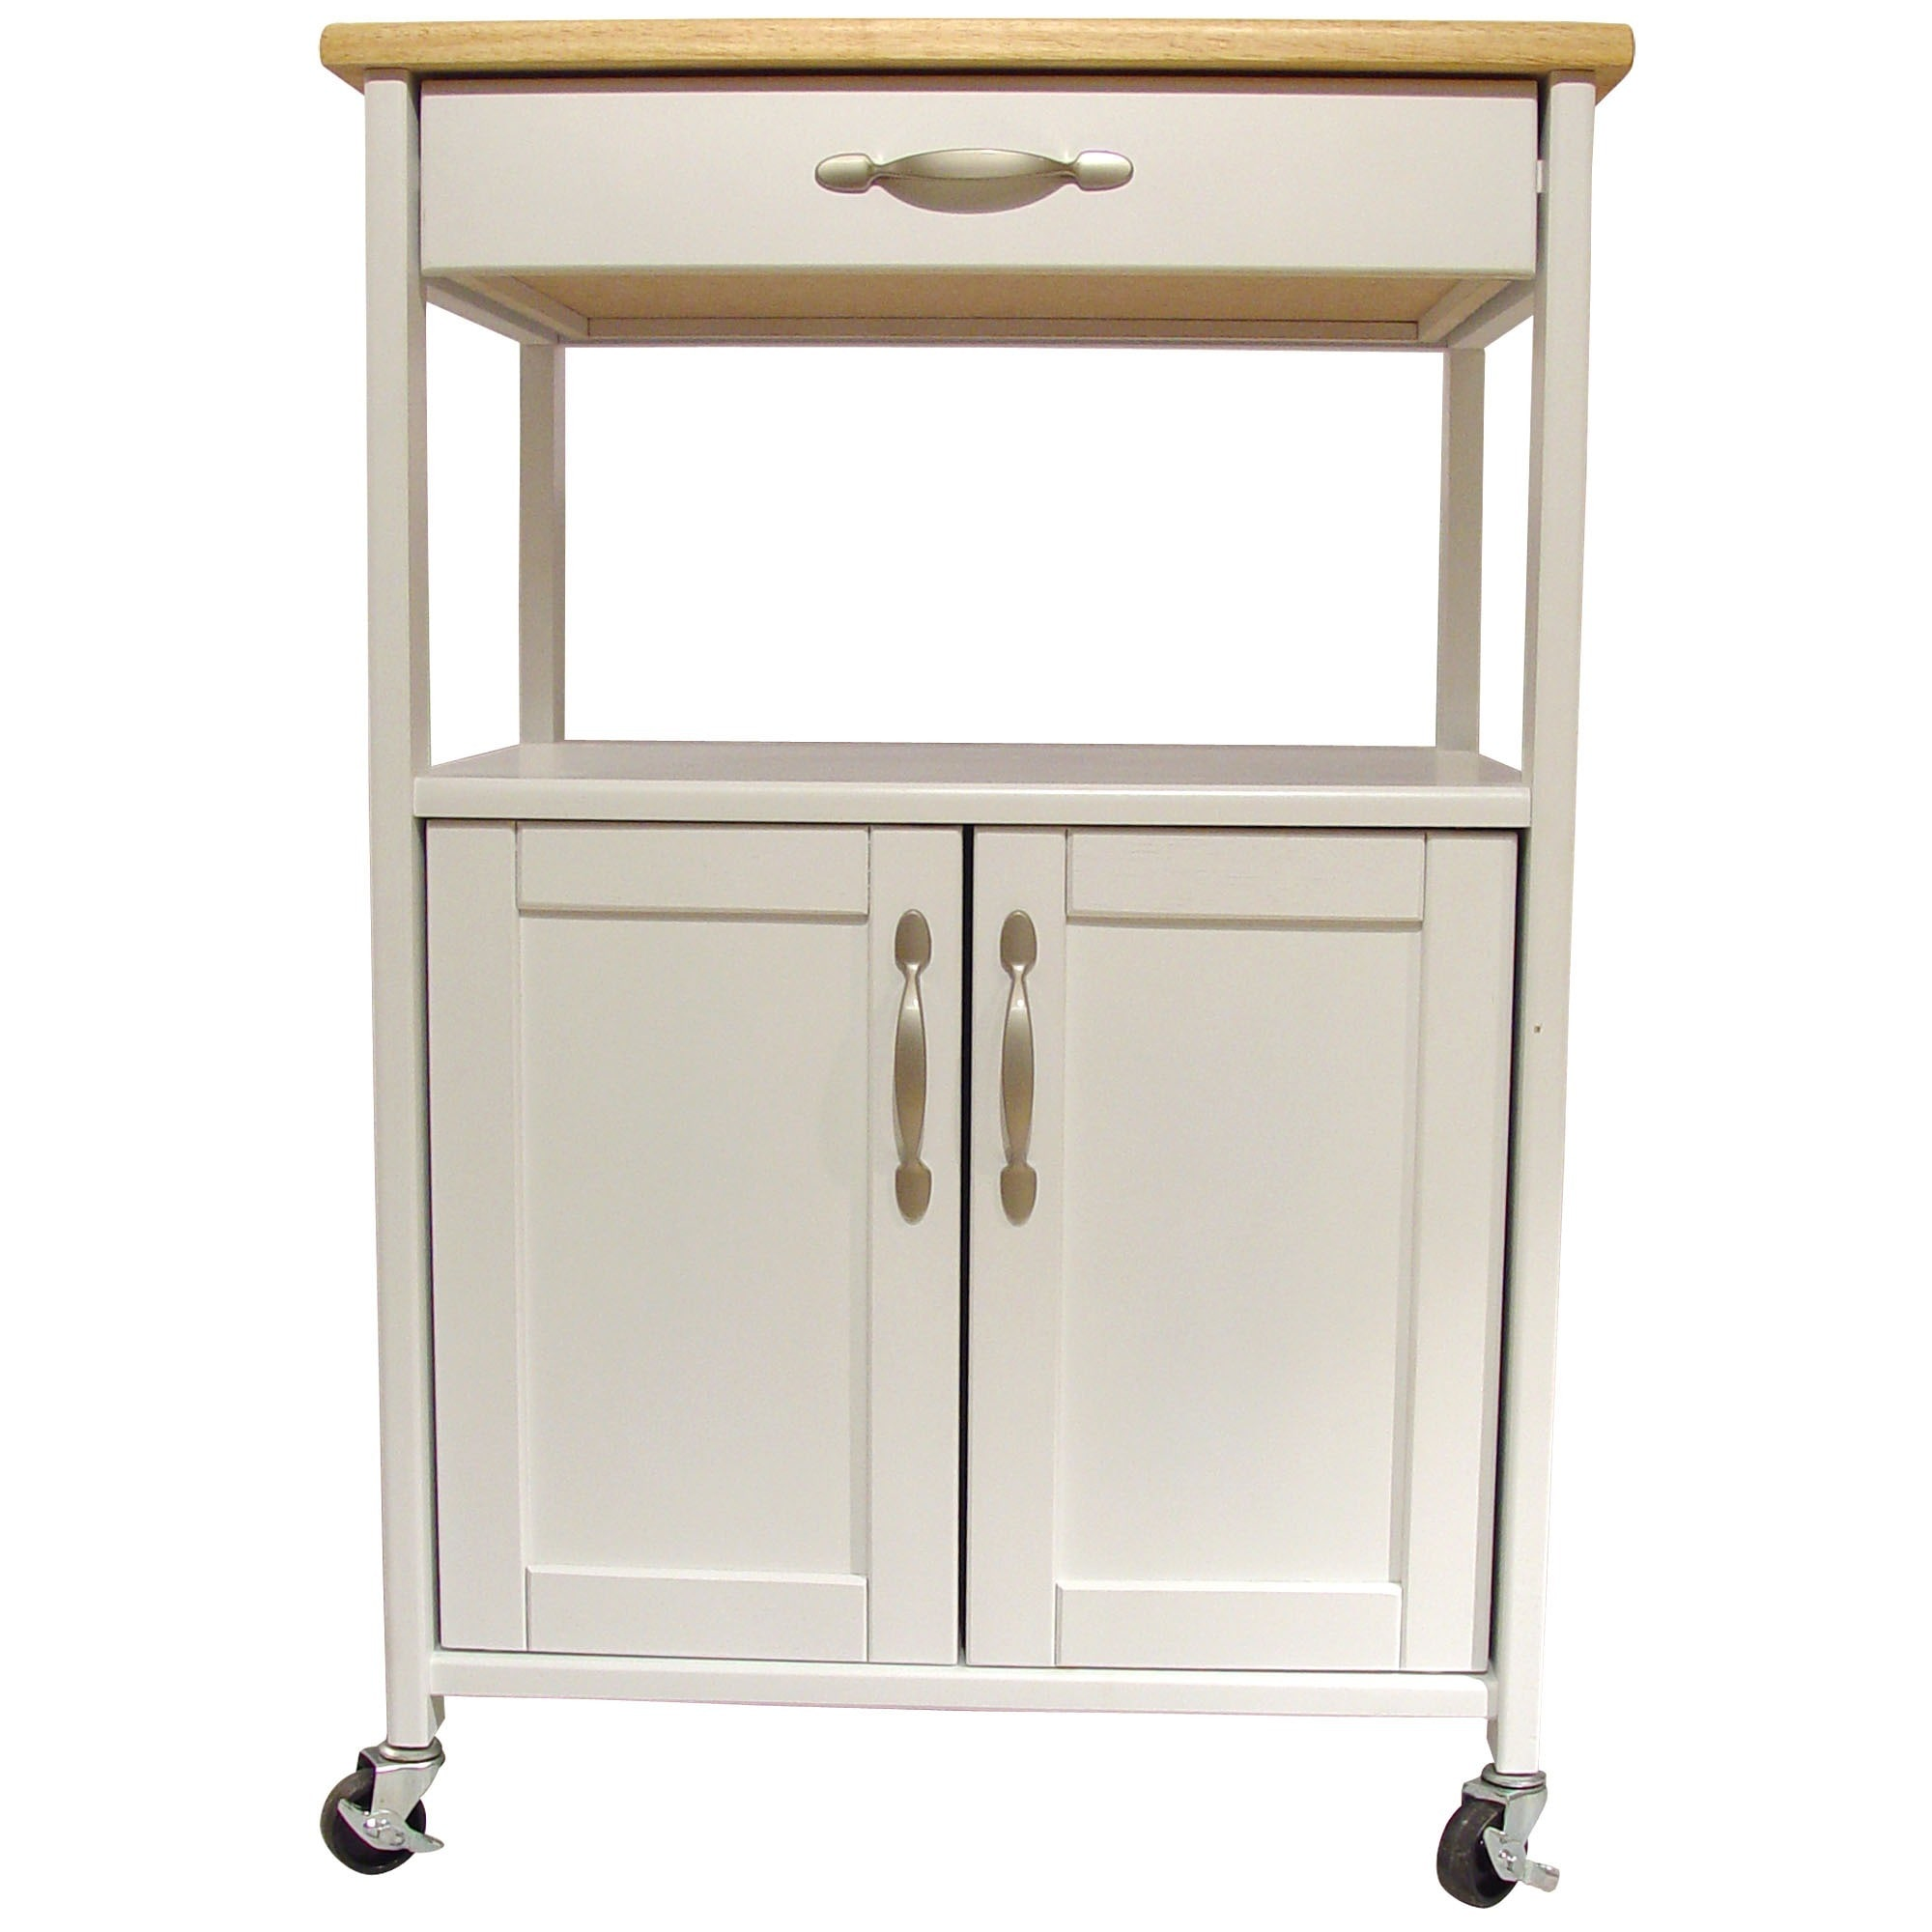 block cart garage butcher open kitchen storage with shelf drawer